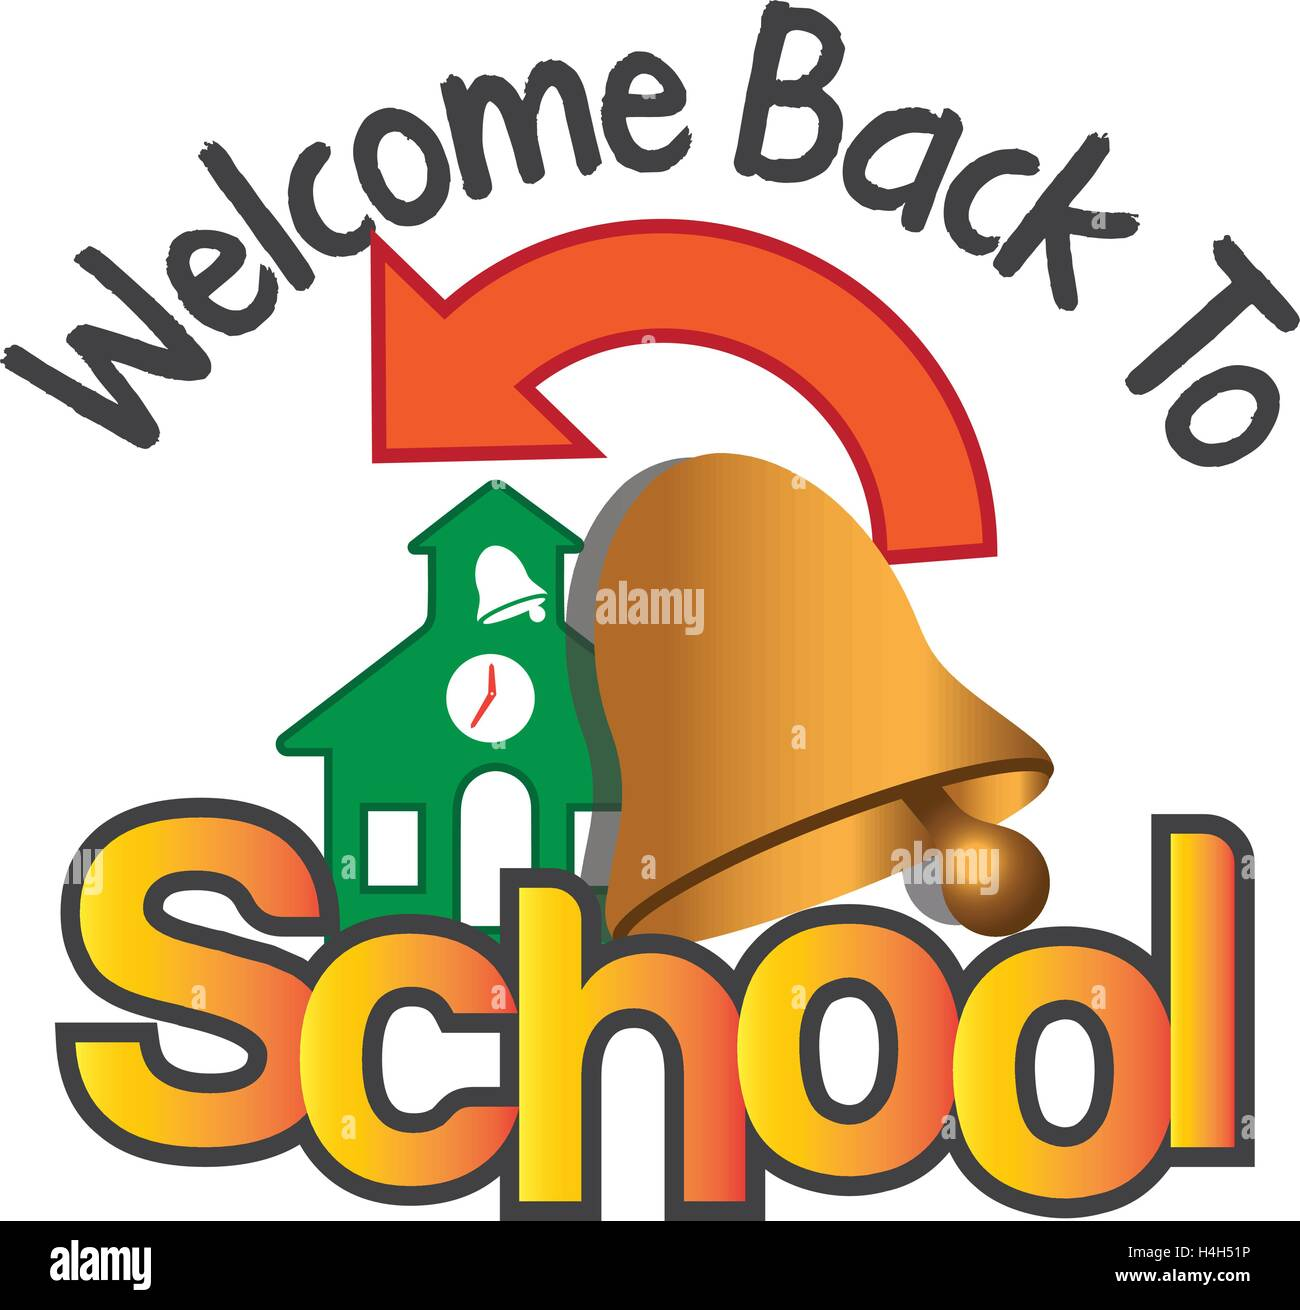 welcome back to school stock vector art illustration vector image rh alamy com welcome back to school teachers clipart welcome back to school banner clipart